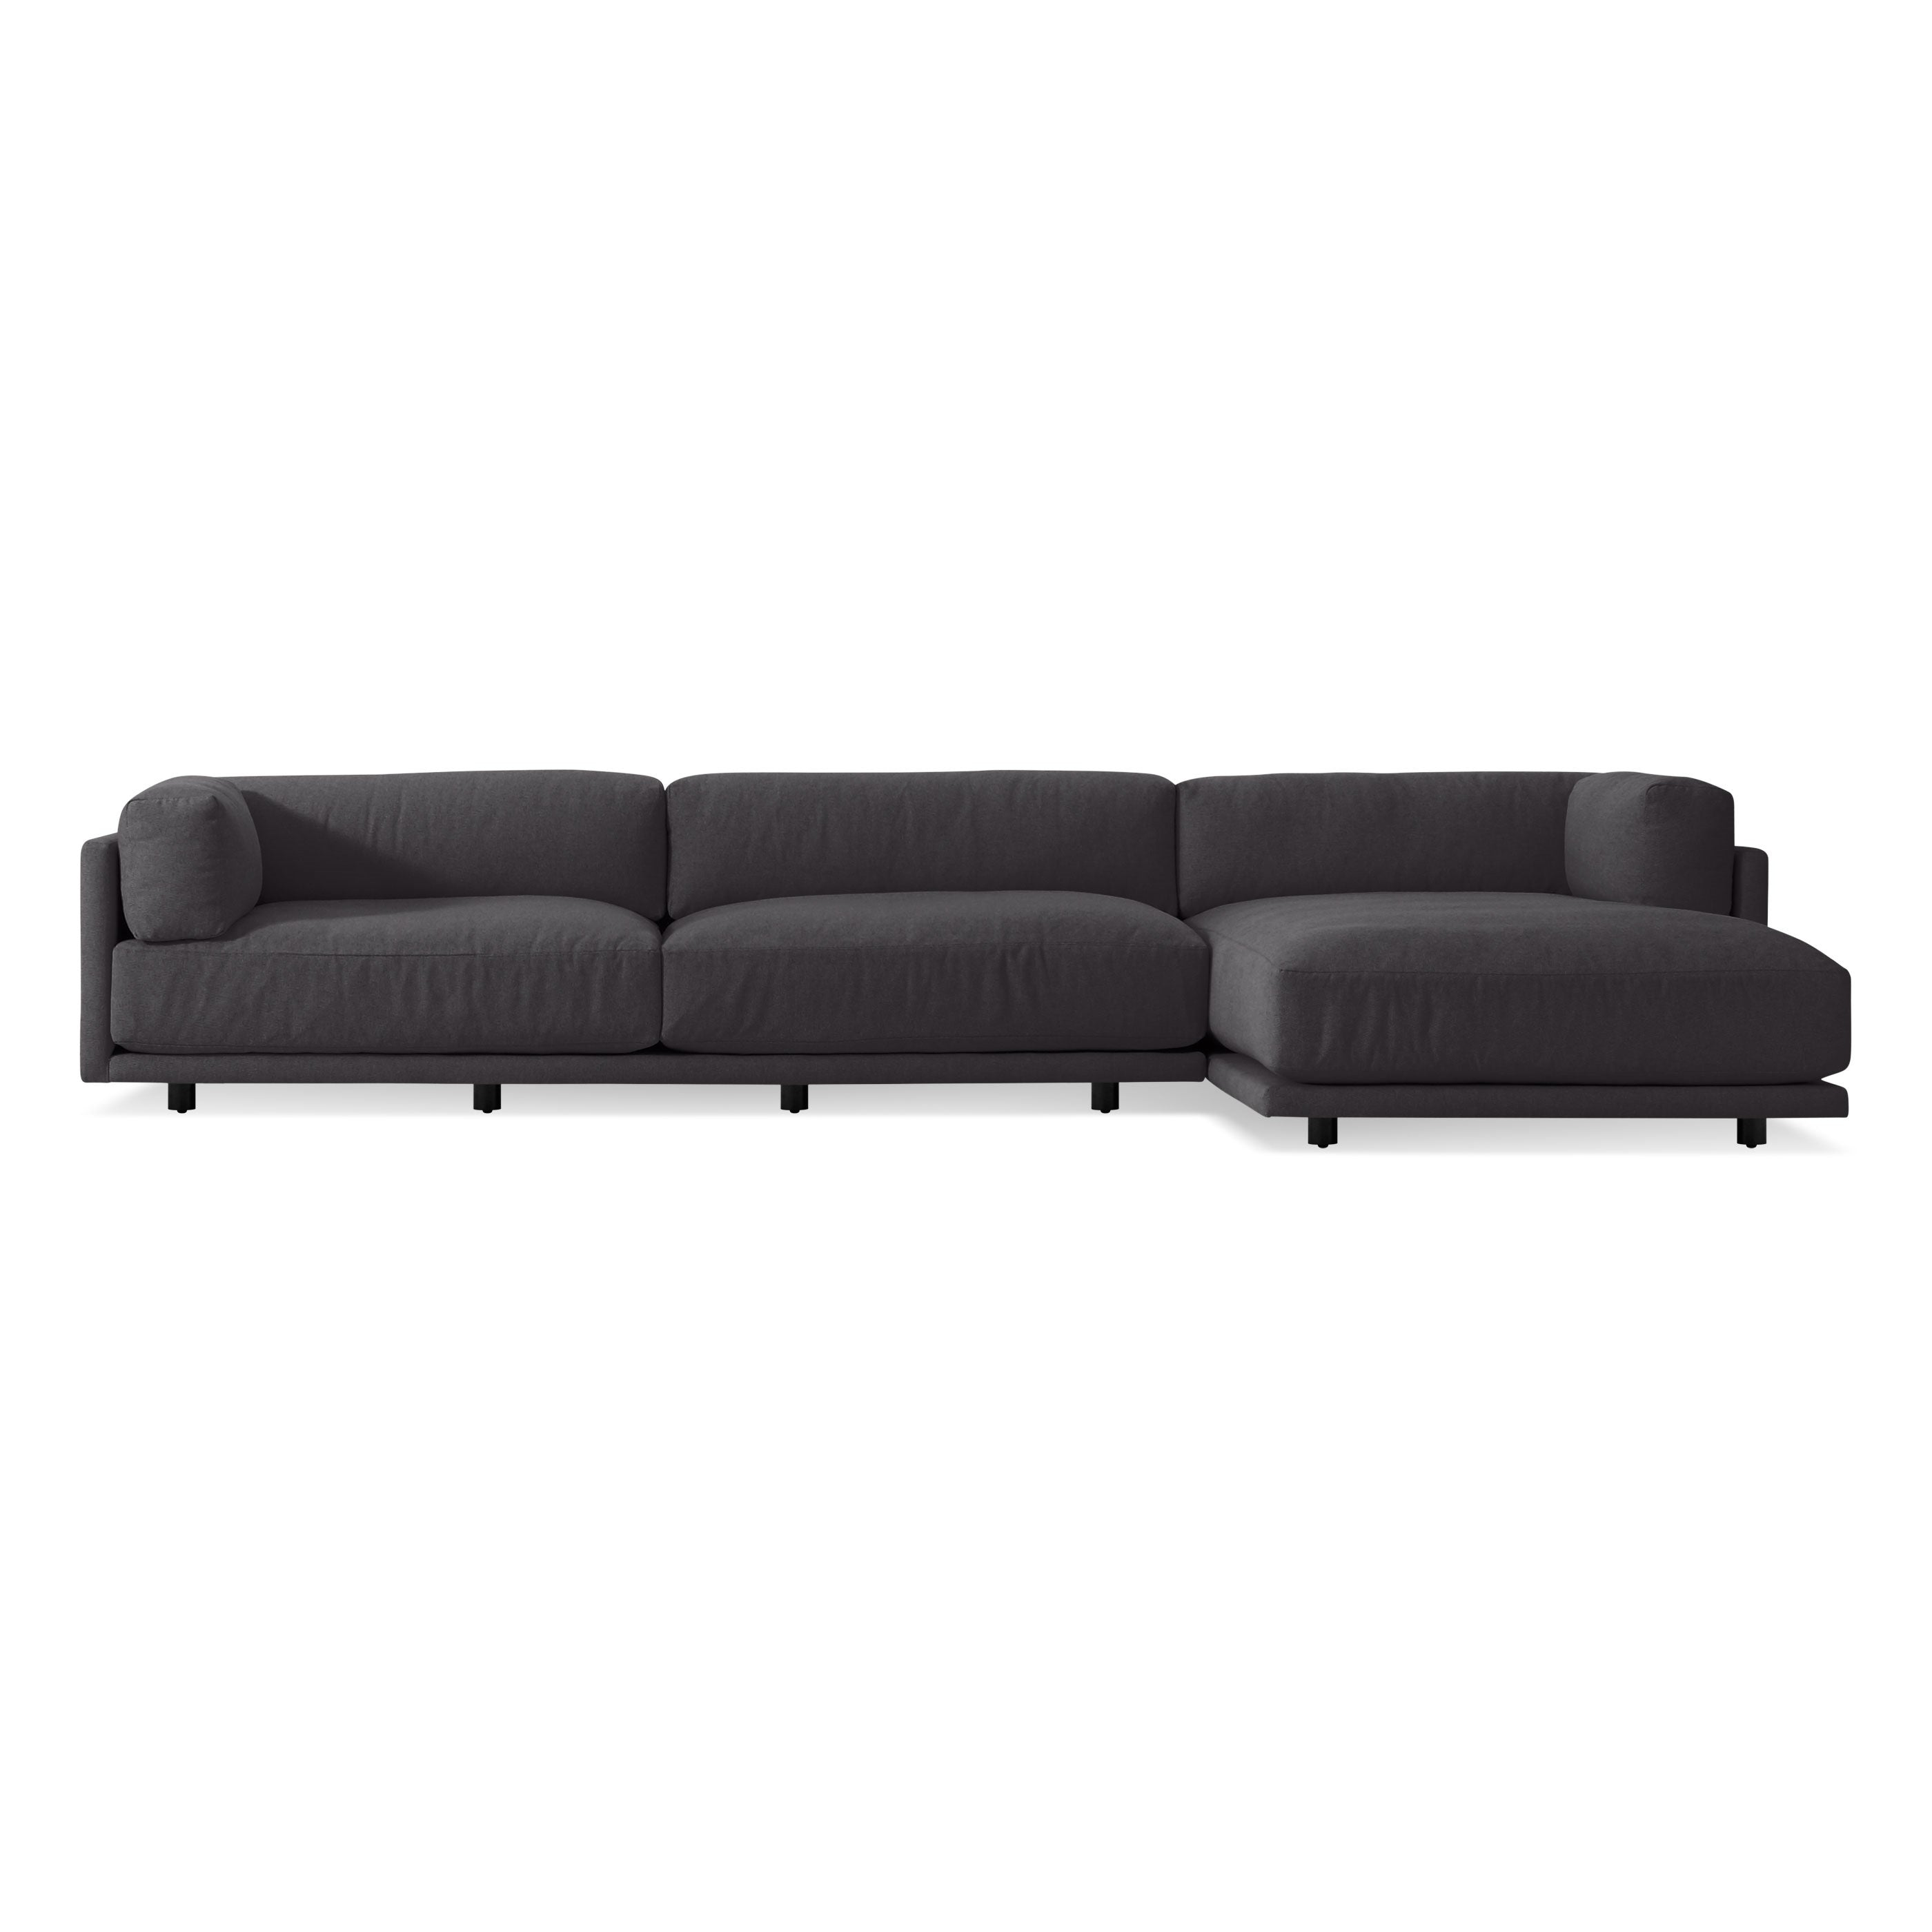 "Sunday 150"" Sofa With Chaise"